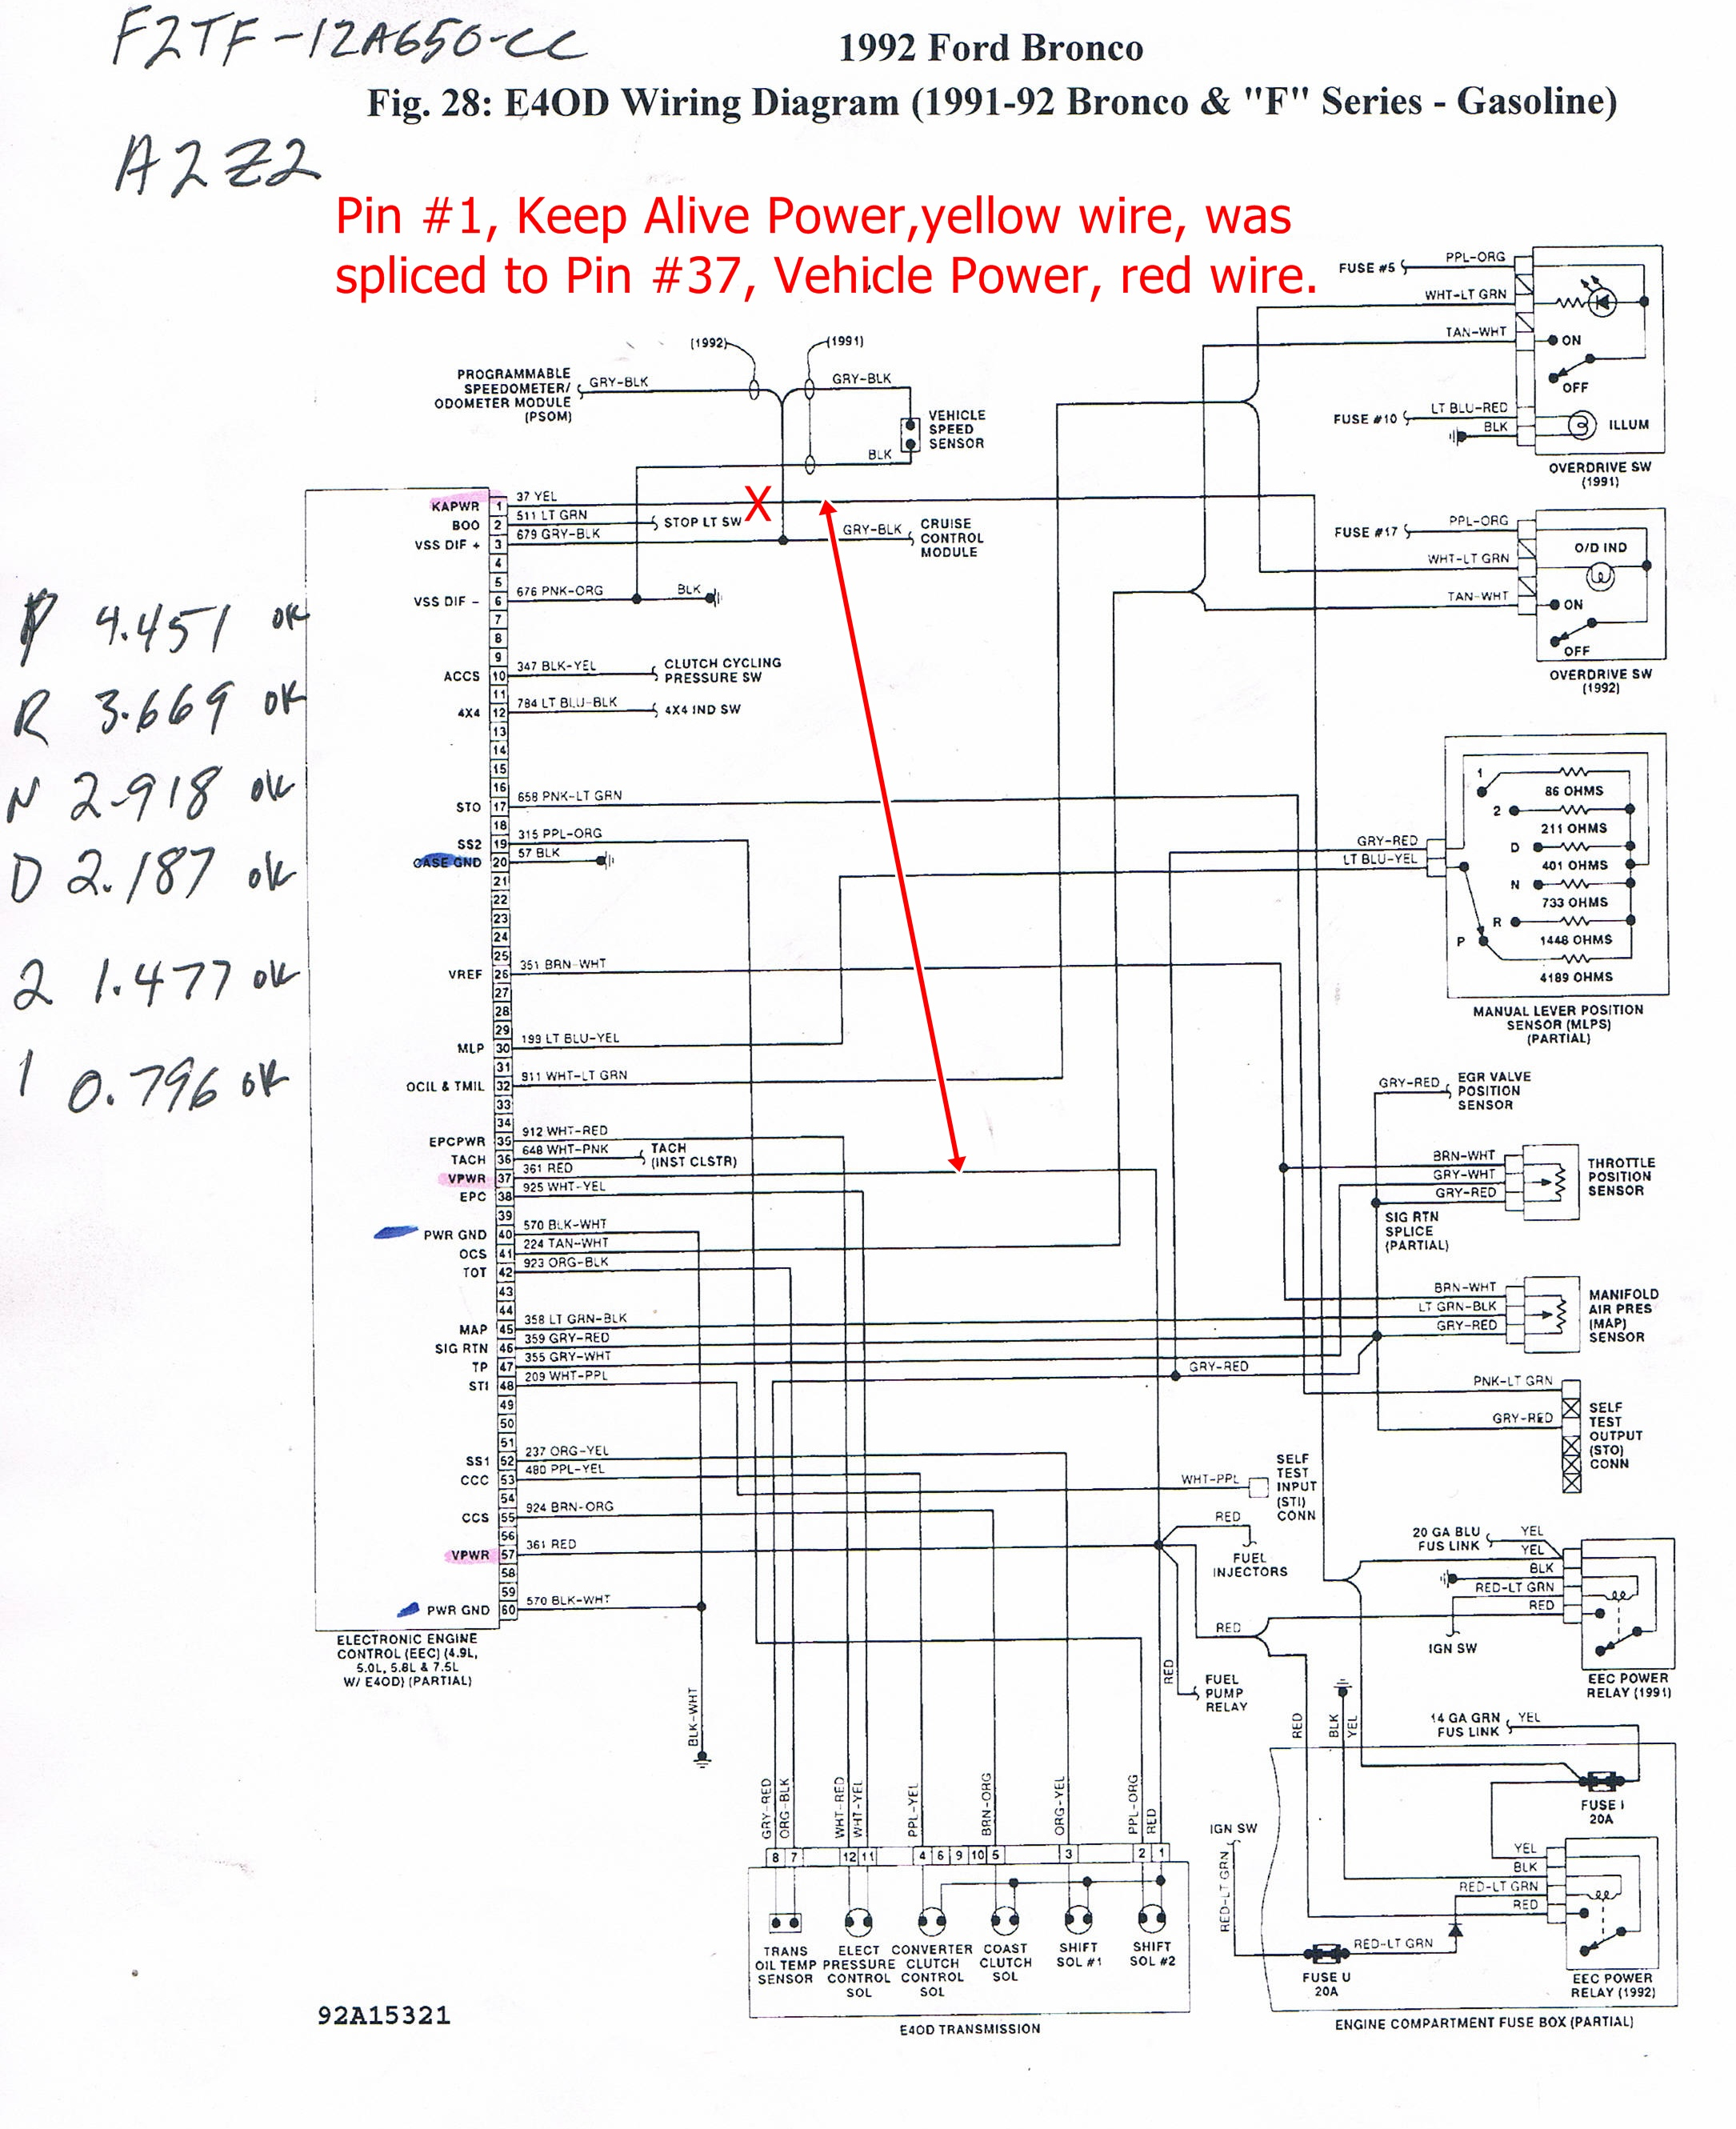 WRG-7792] Toyota 4runner Fuse Box Location And Diagram How To on